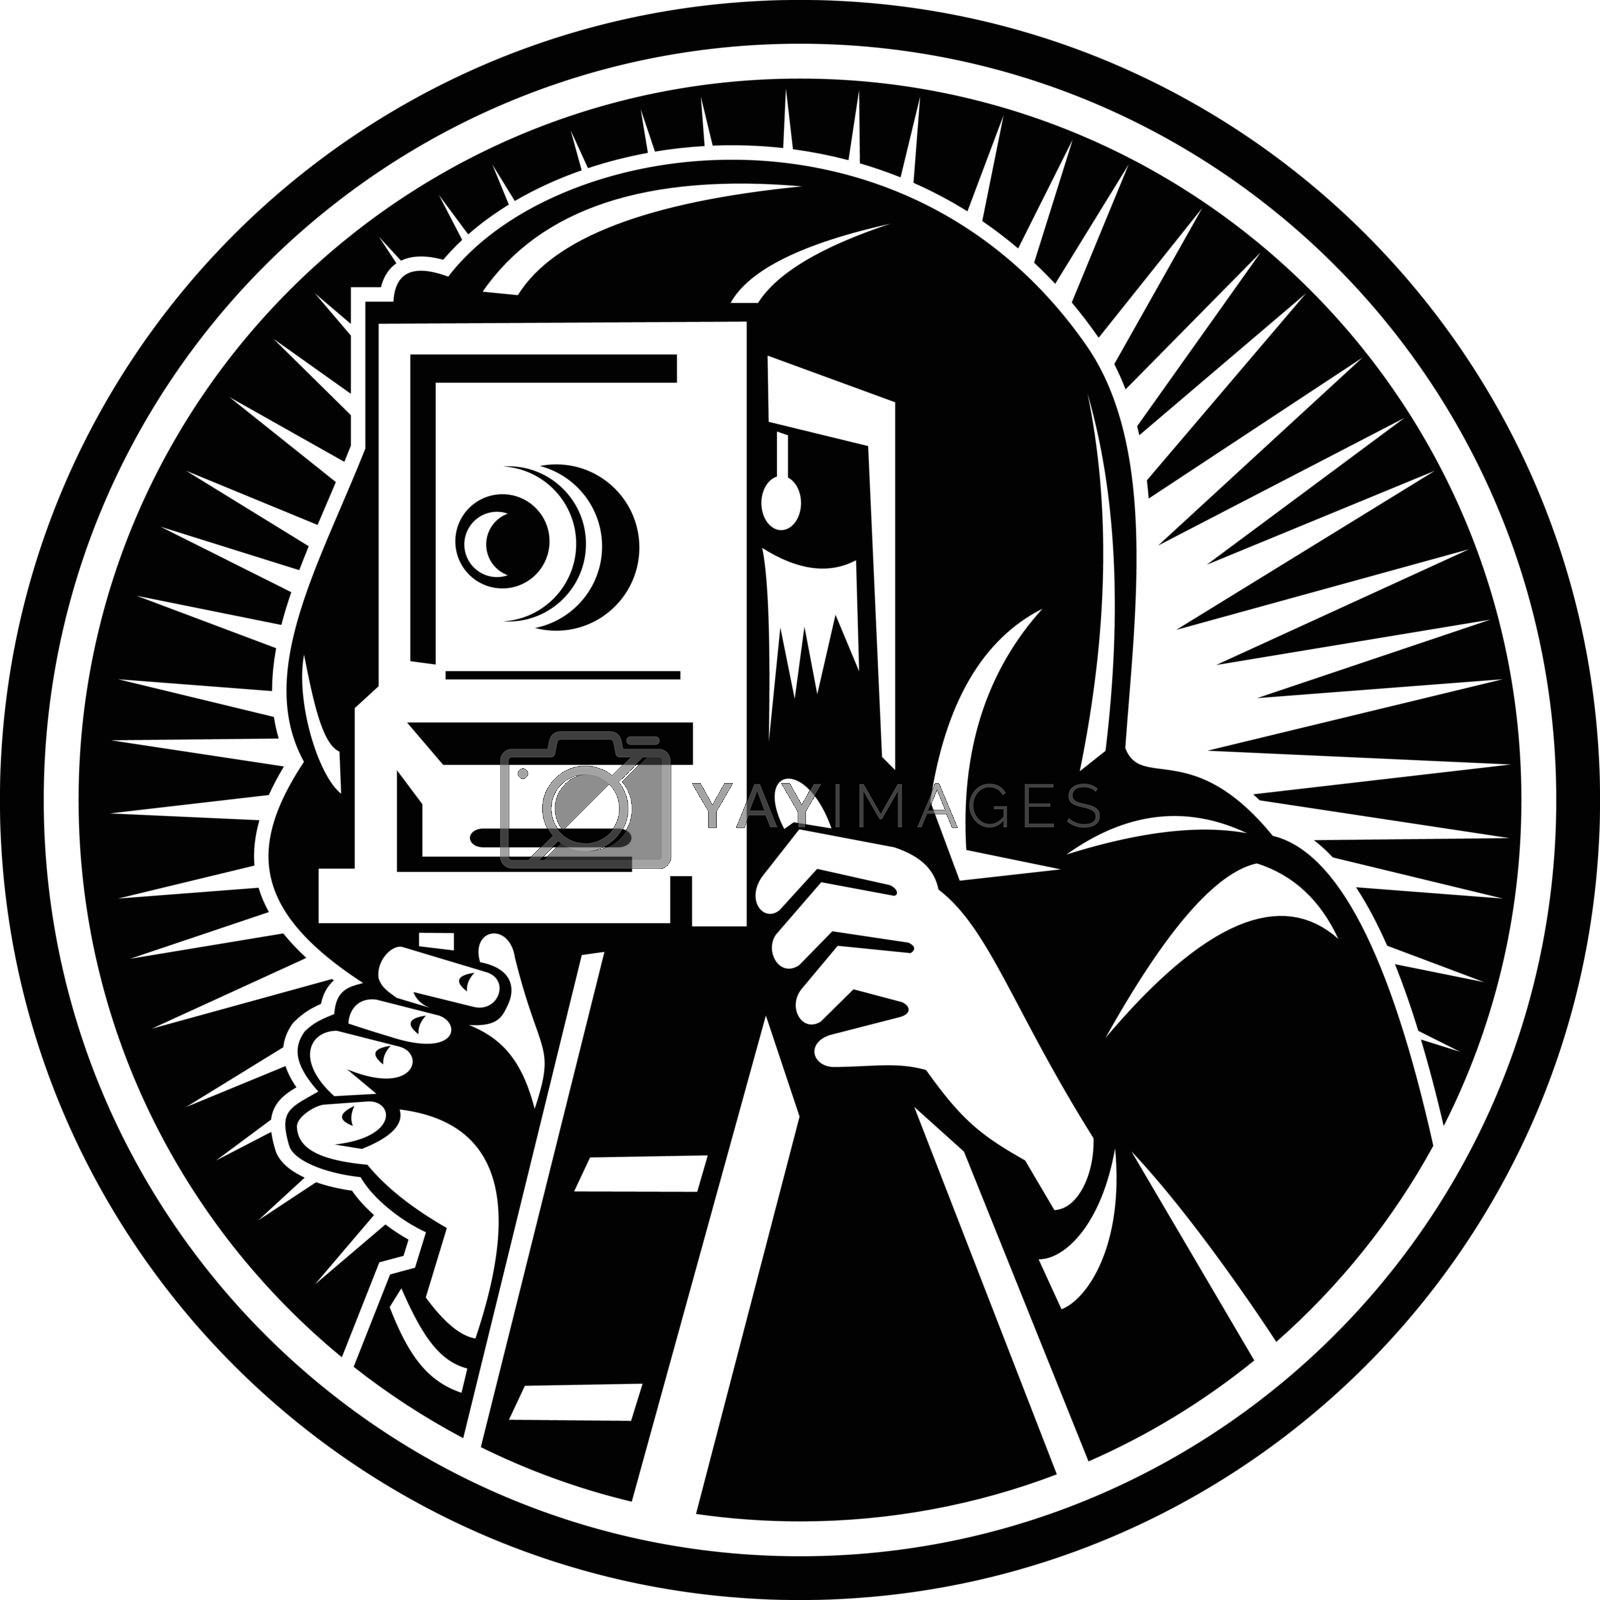 Retro woodcut style illustration of a photographer shooting taking photo using a vintage box camera viewed from front set inside circle on isolated background done in black and white.